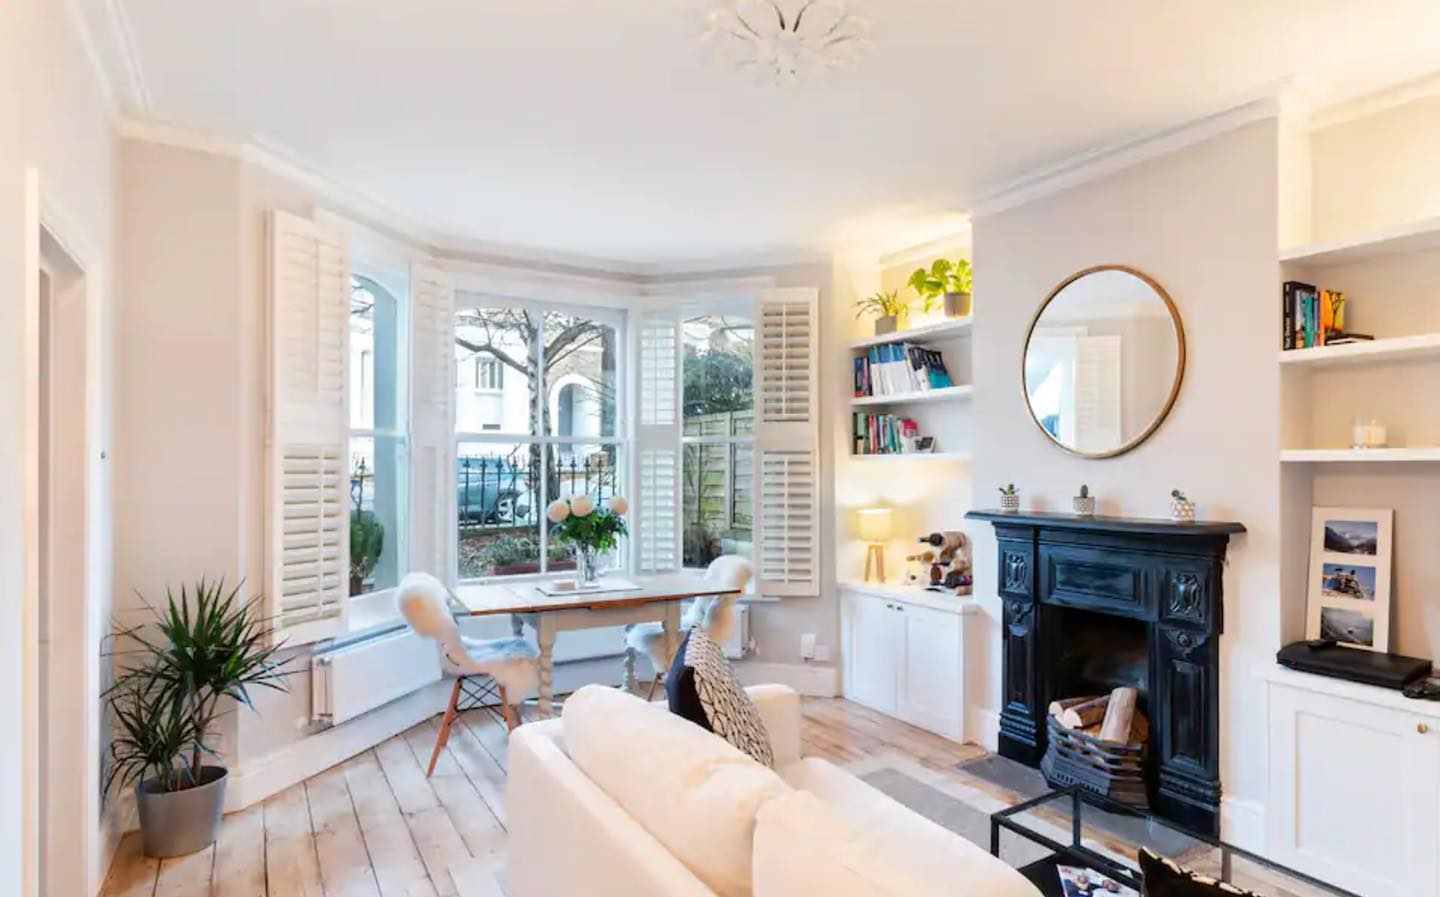 Beautiful & Cosy 1-Bedroom Apartment in Clapham available to book now @stayinlondon.co.uk #airbnb #booking #apartamento